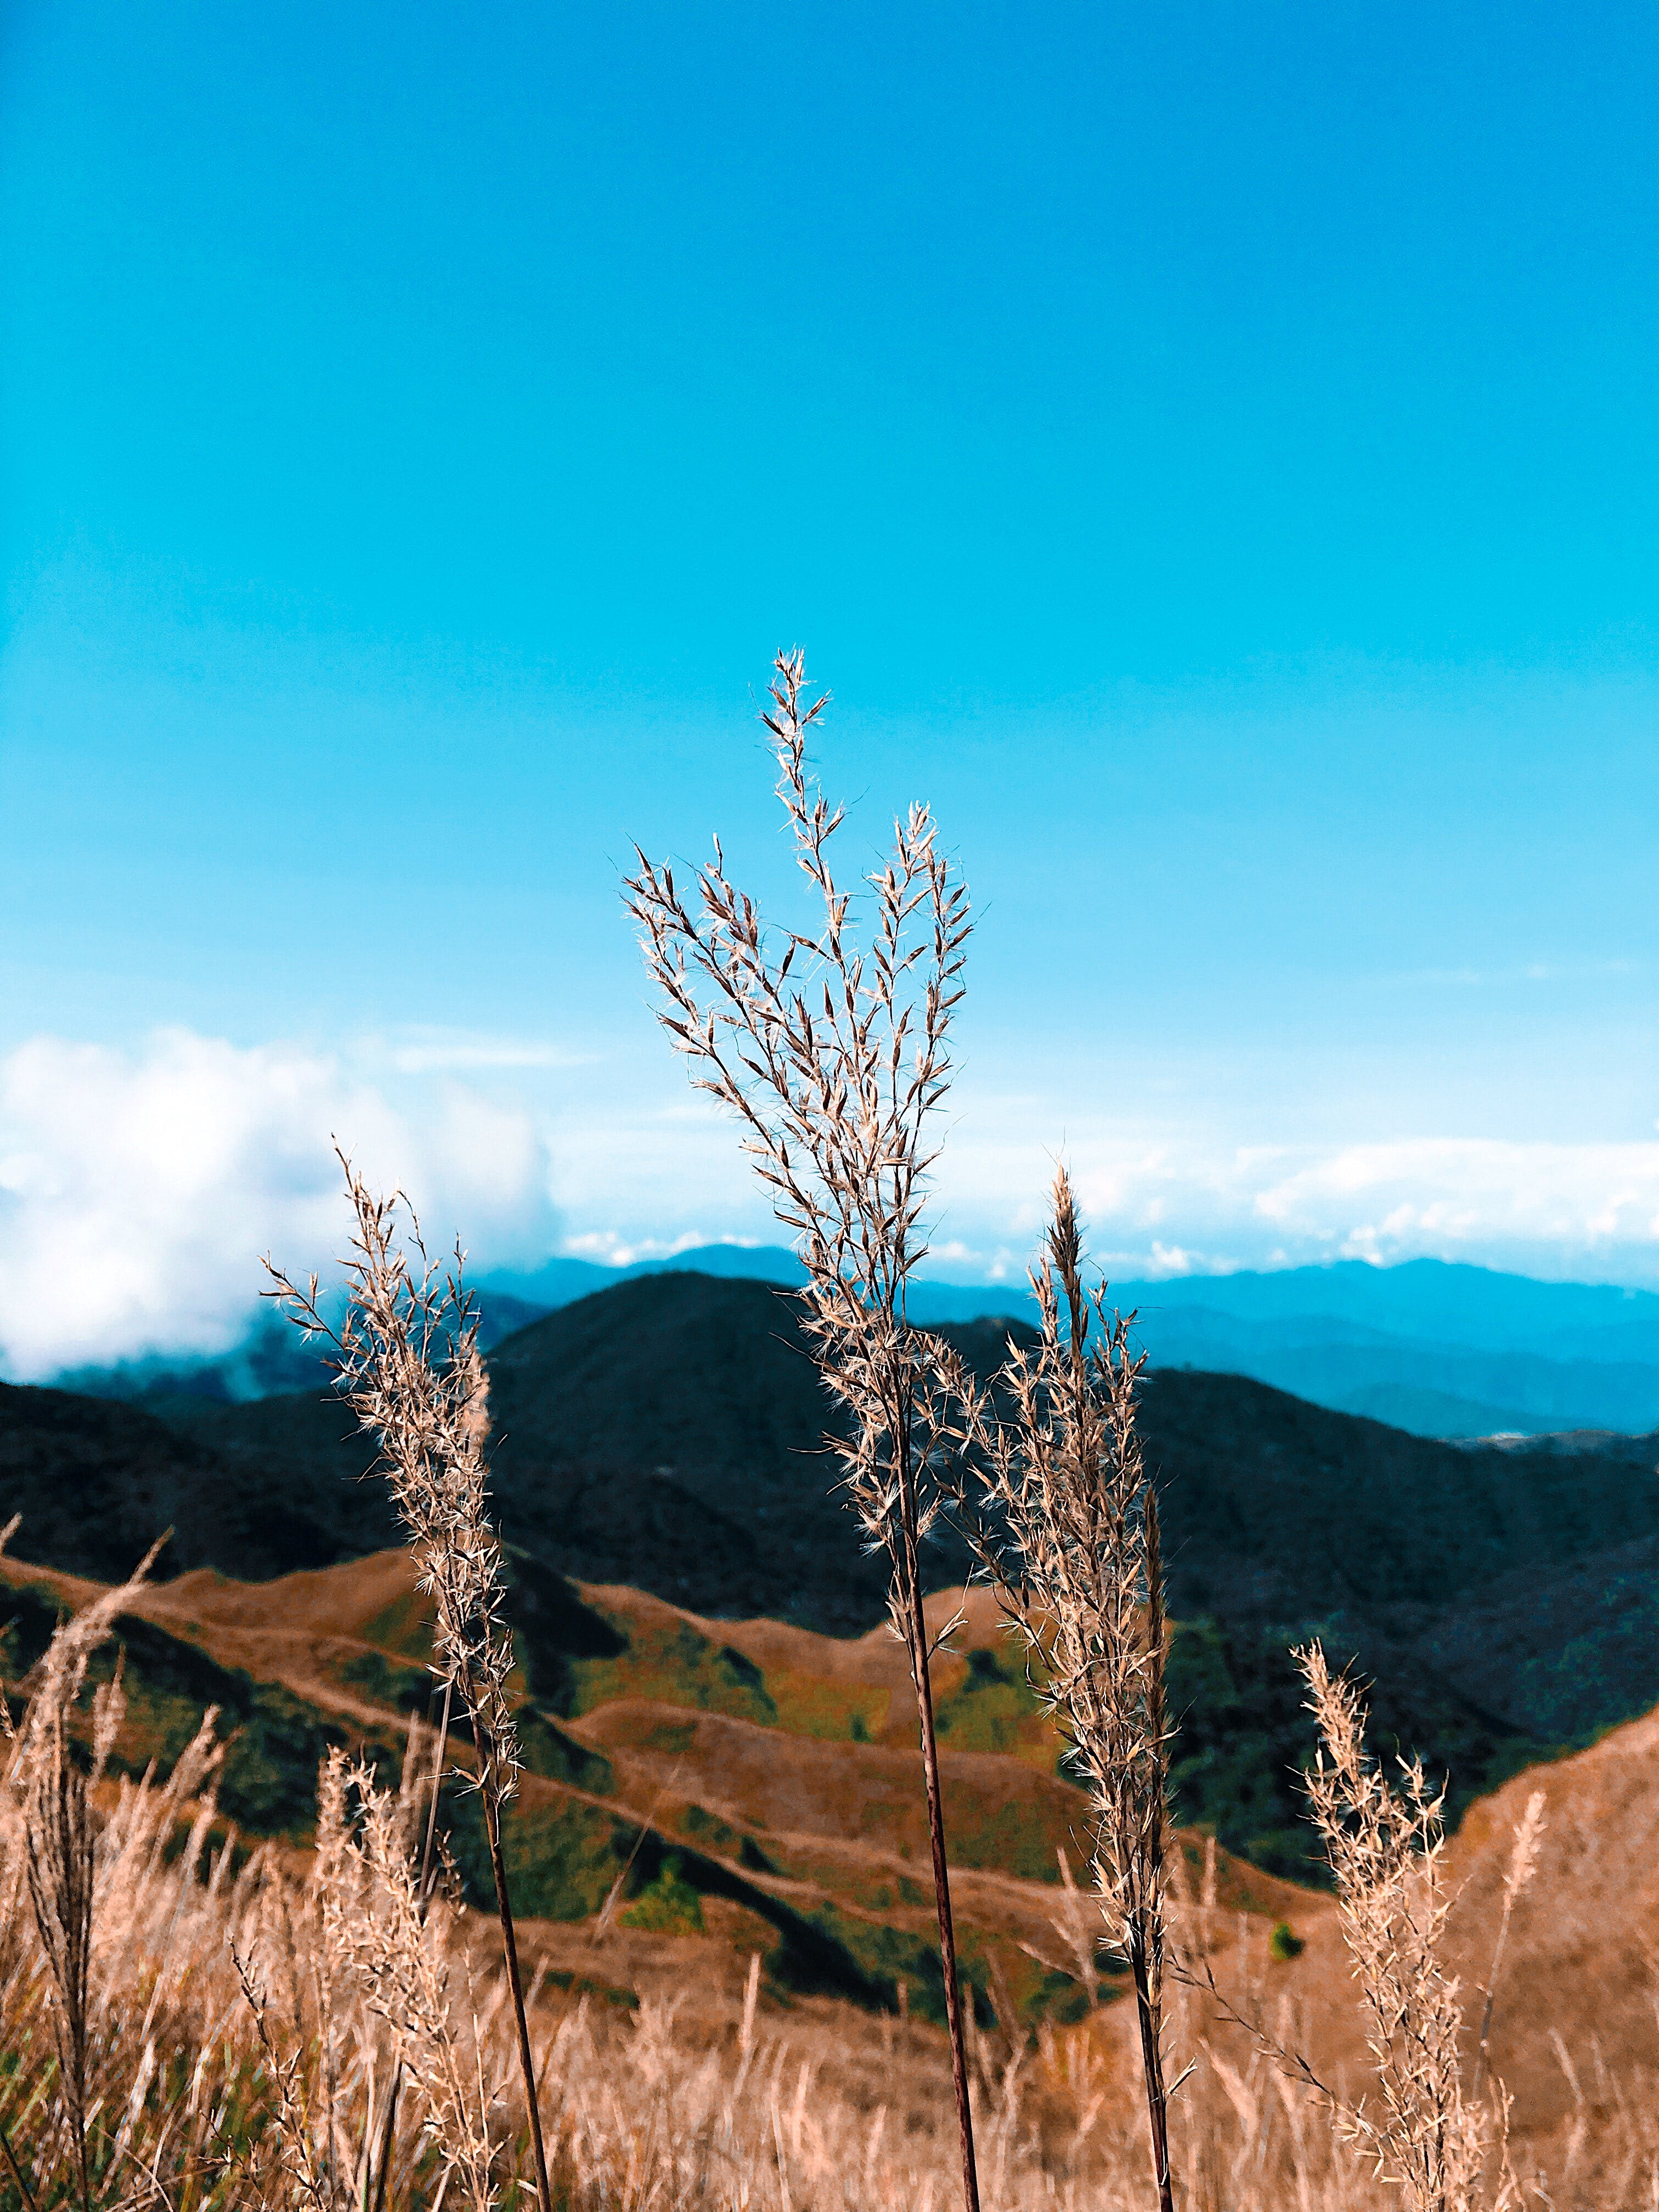 Focus Photo of Brown Plants on Mountain Range